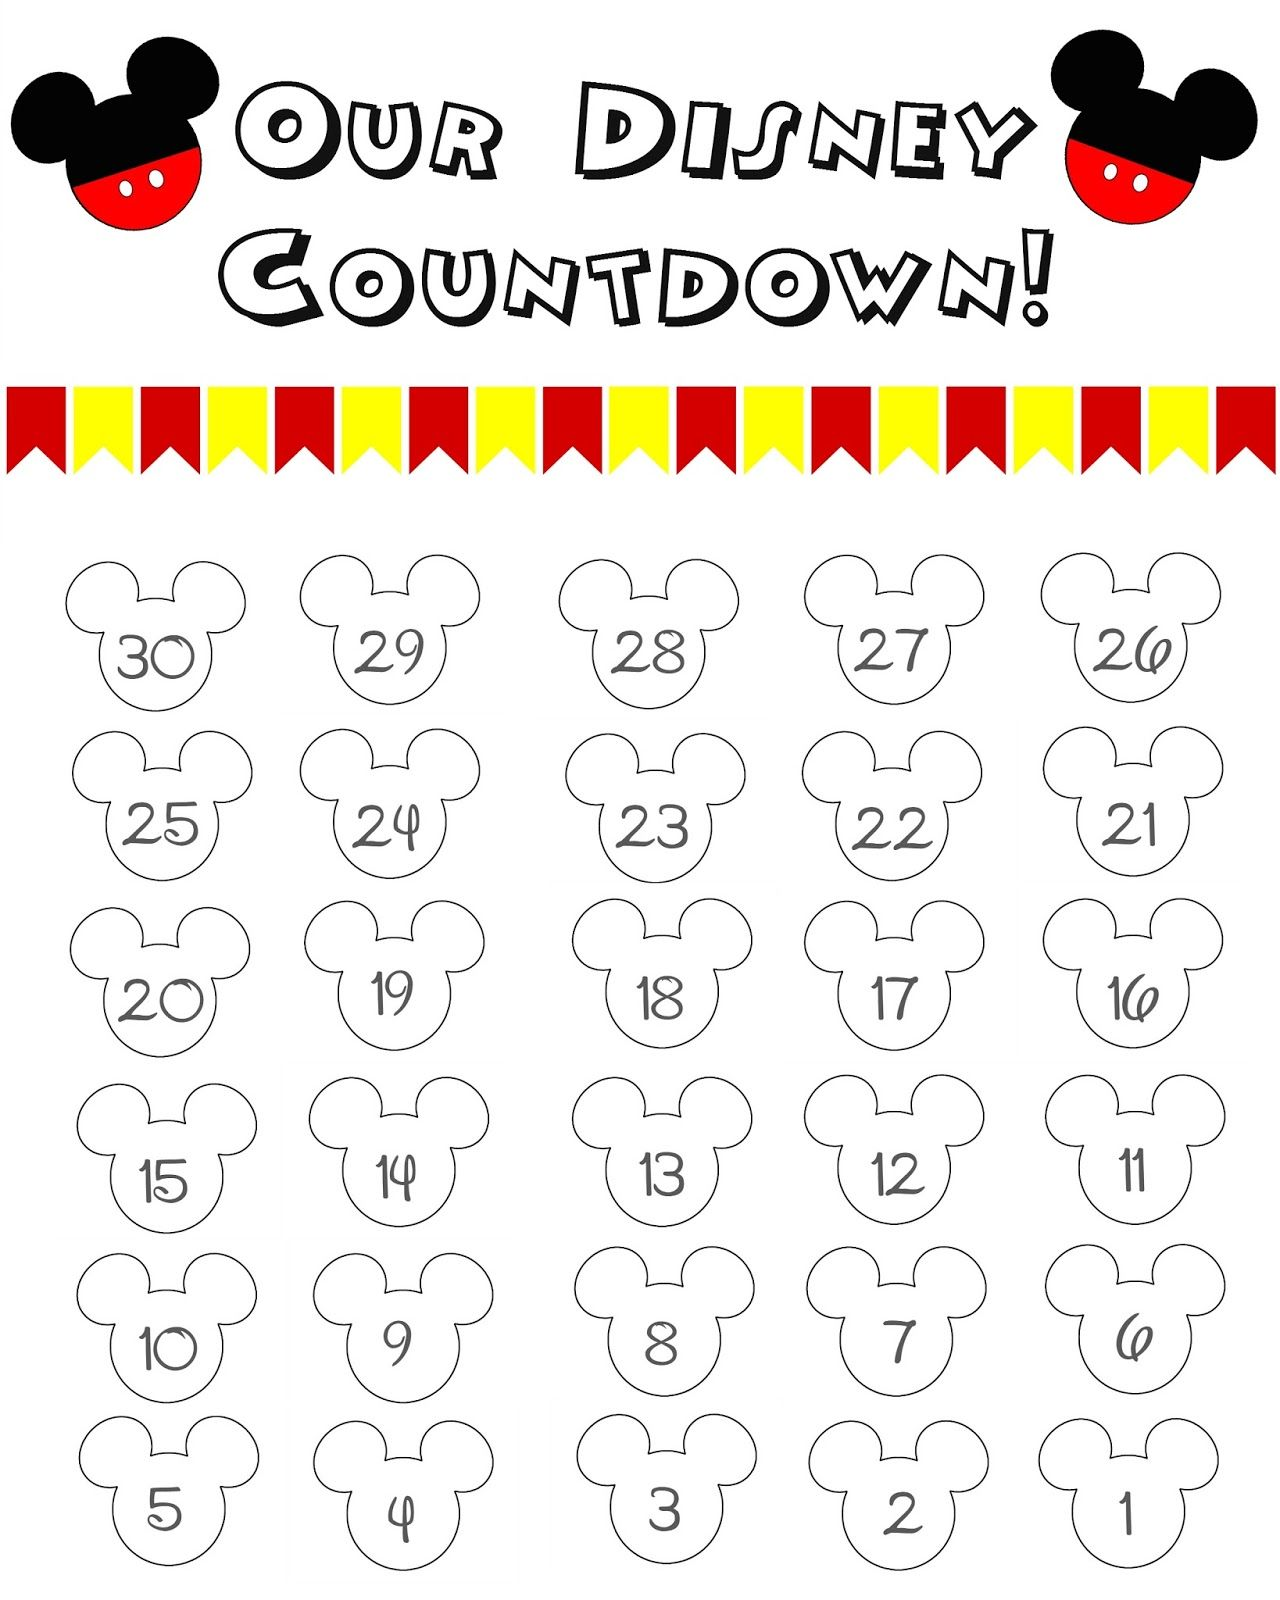 Disney World Countdown Calendar - FREE Printable | The Momma Diaries ...